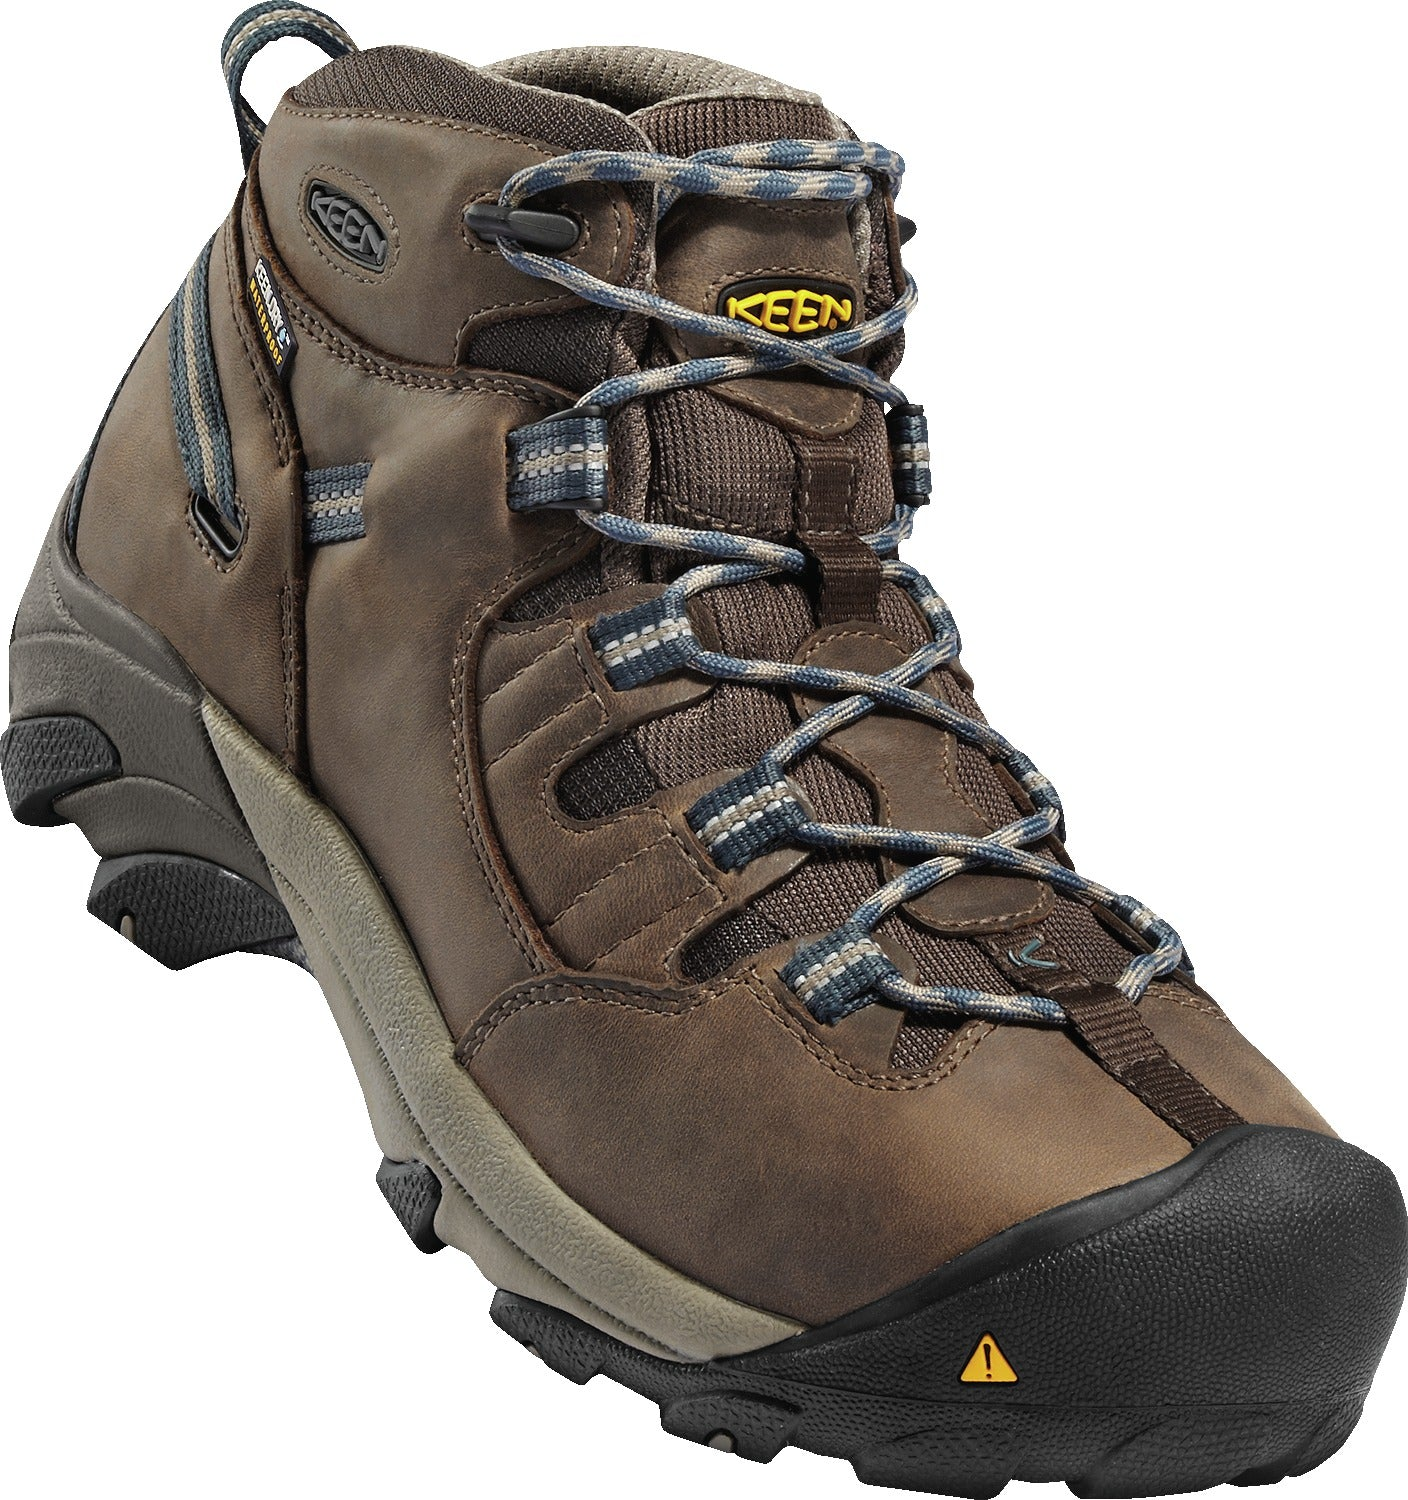 'Keen' 1007004 - Detroit Mid Steel Toe Waterproof Hiker - Cascade Brown